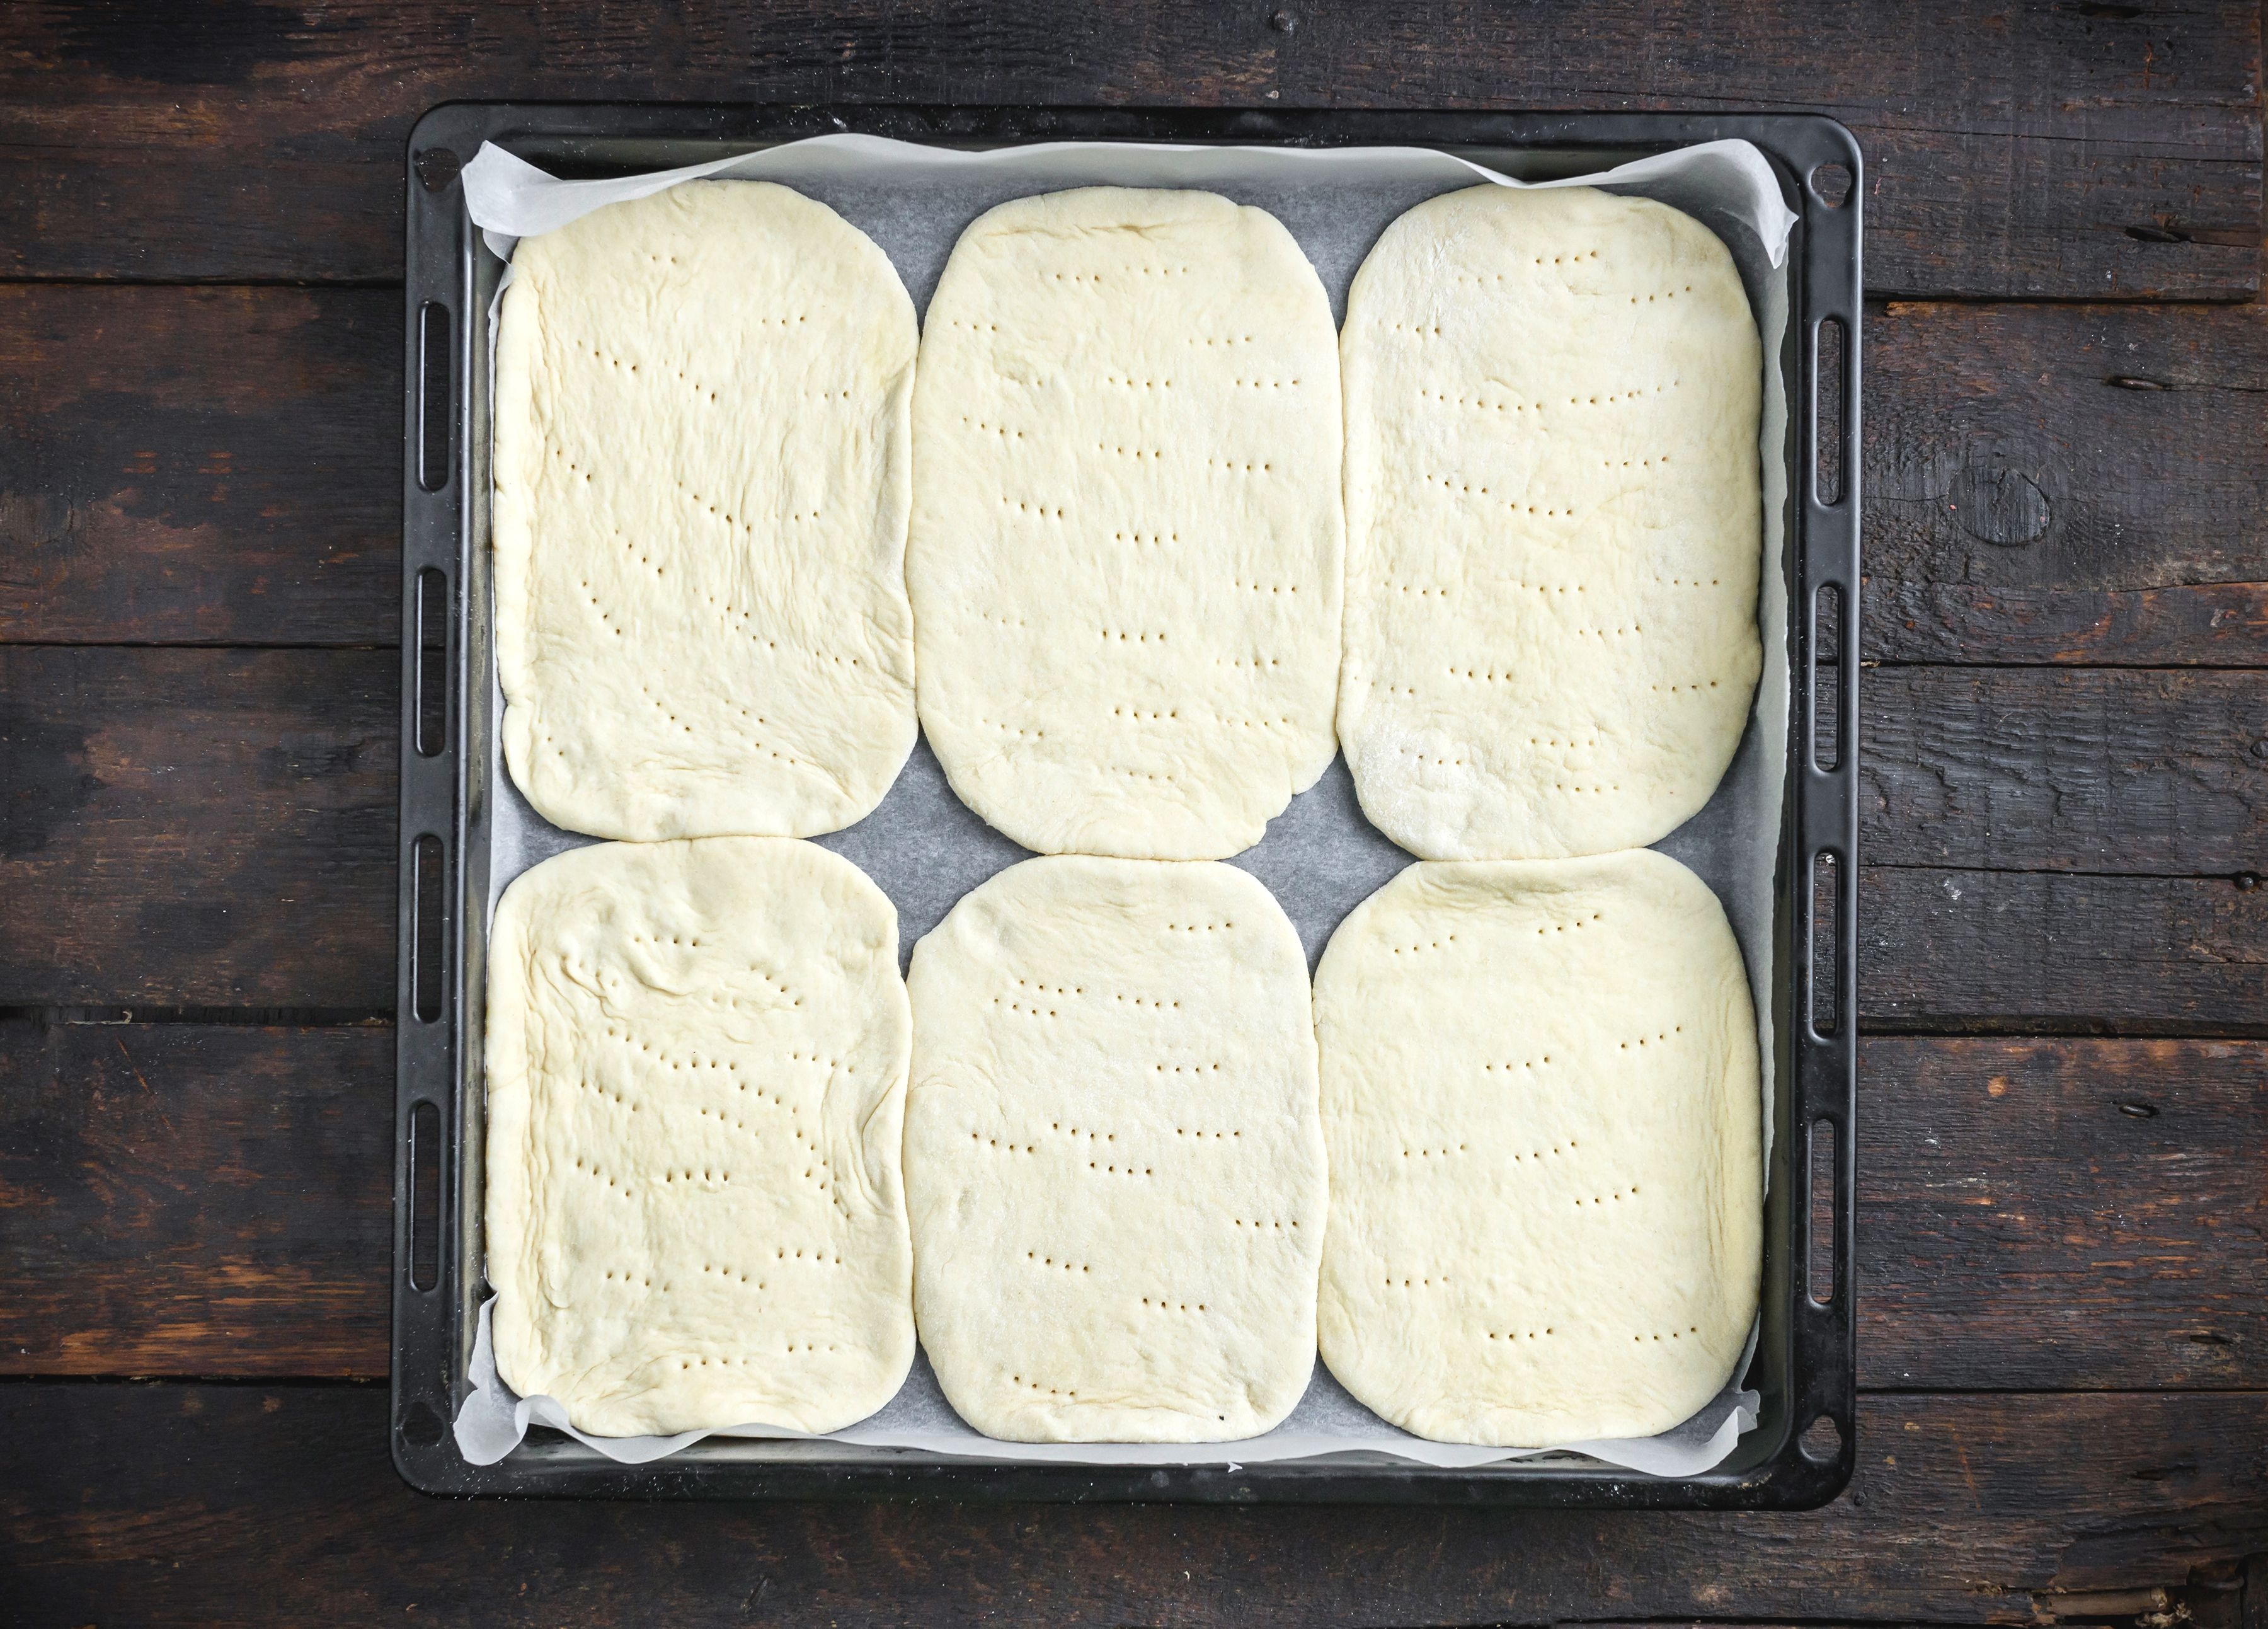 Transfer dough, pricked with fork tines, to baking sheets